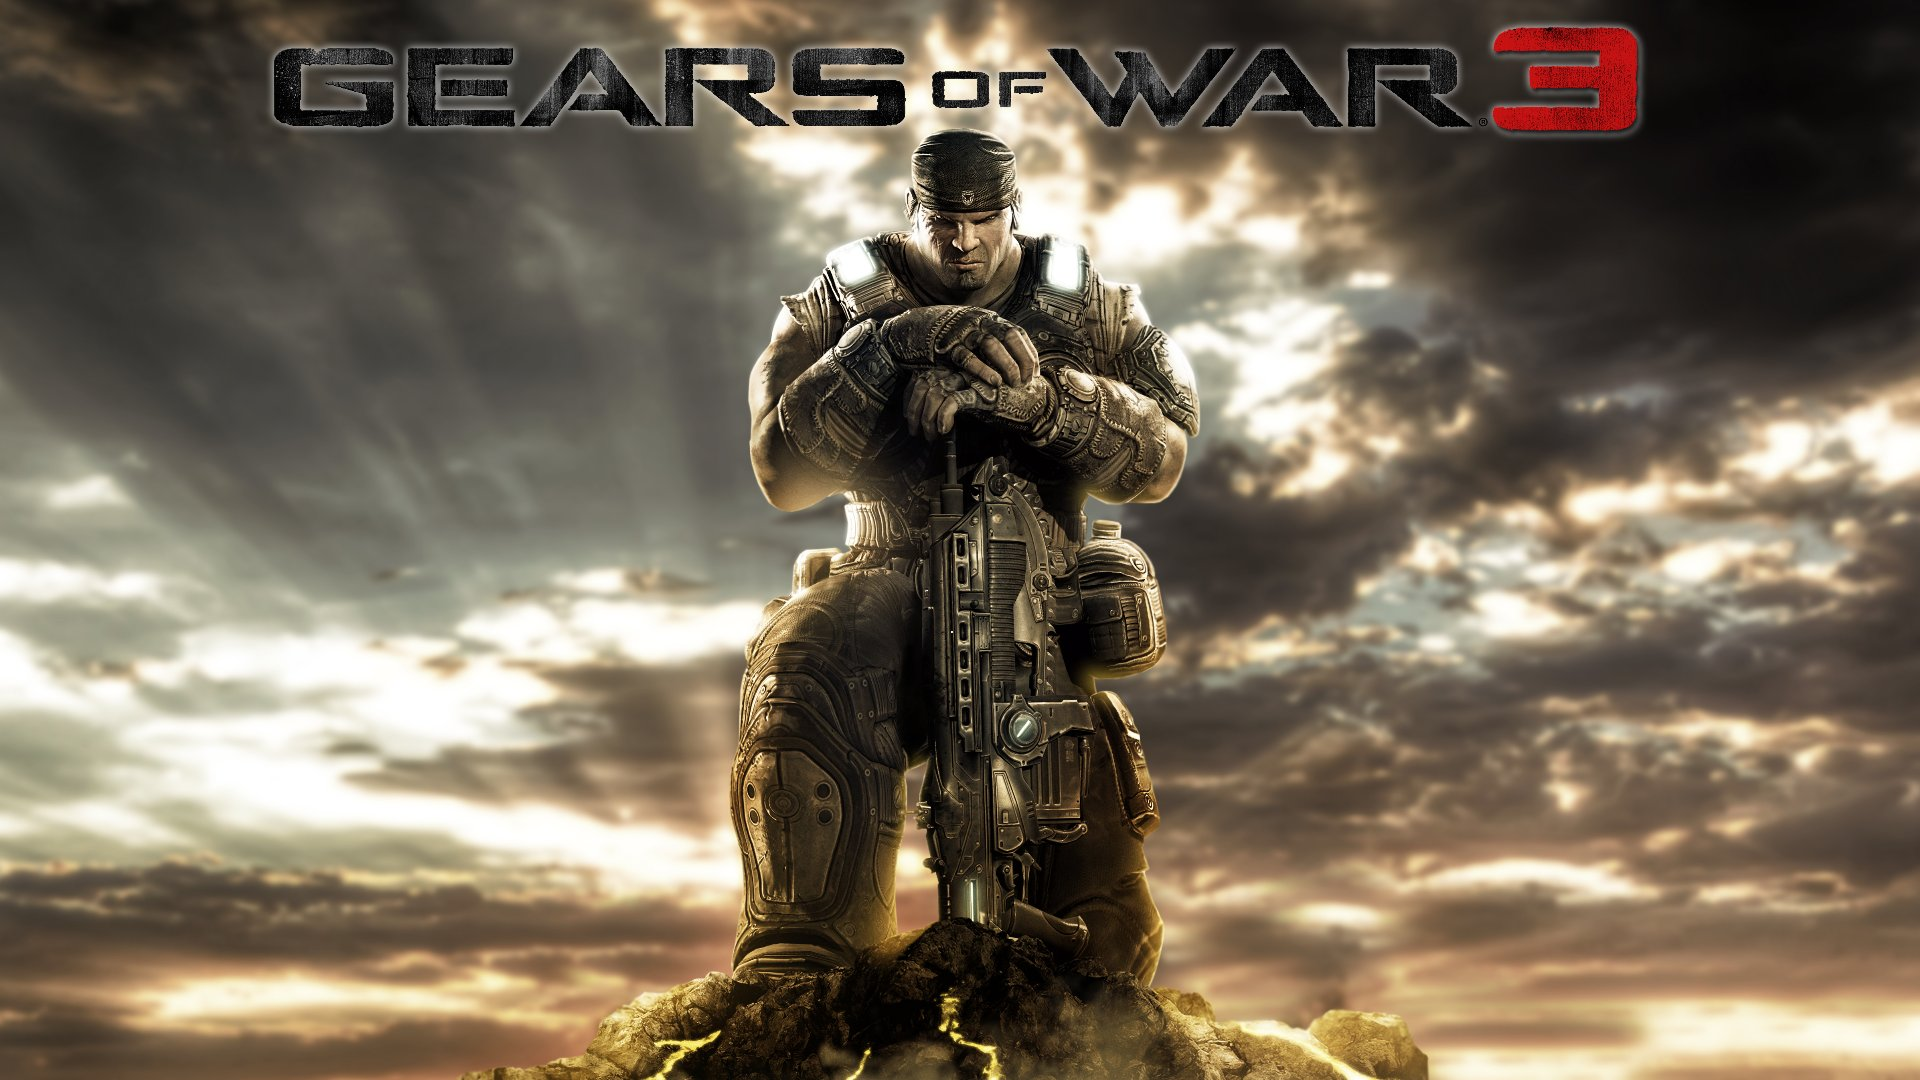 Gears Of War 3 Wallpapers: The Art Of Gears Of War 3 Book Review